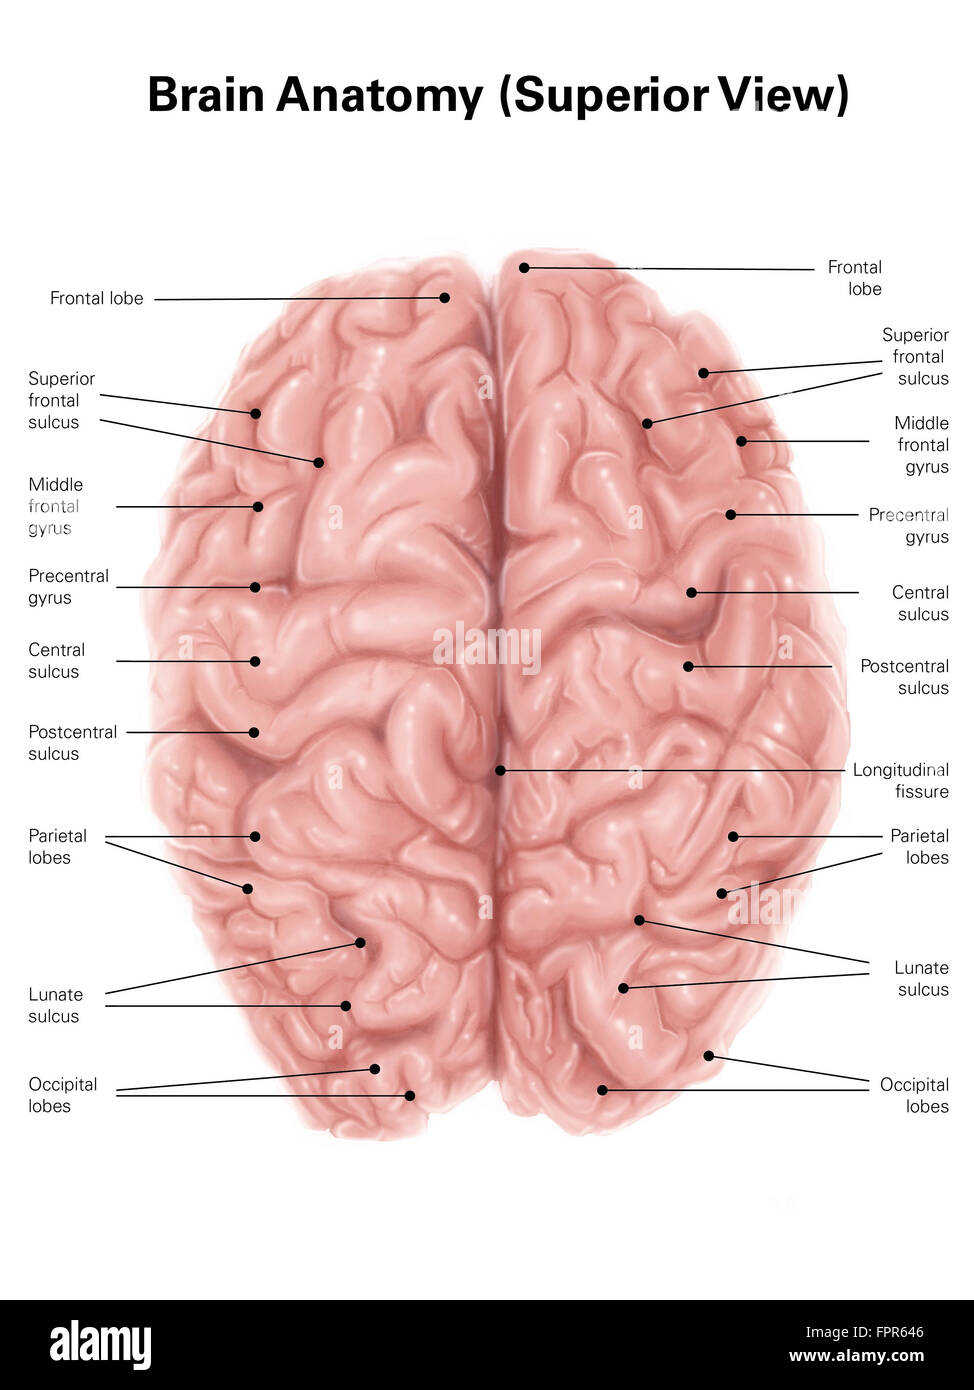 Human brain anatomy, superior view Stock Photo: 100083990 - Alamy